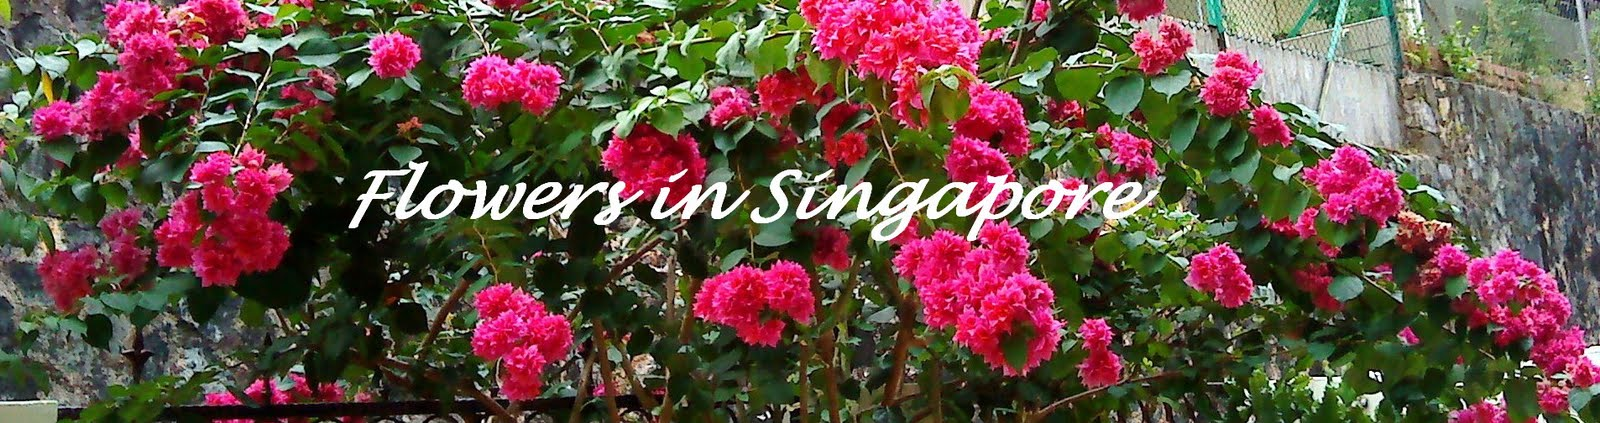 Flowers in Singapore